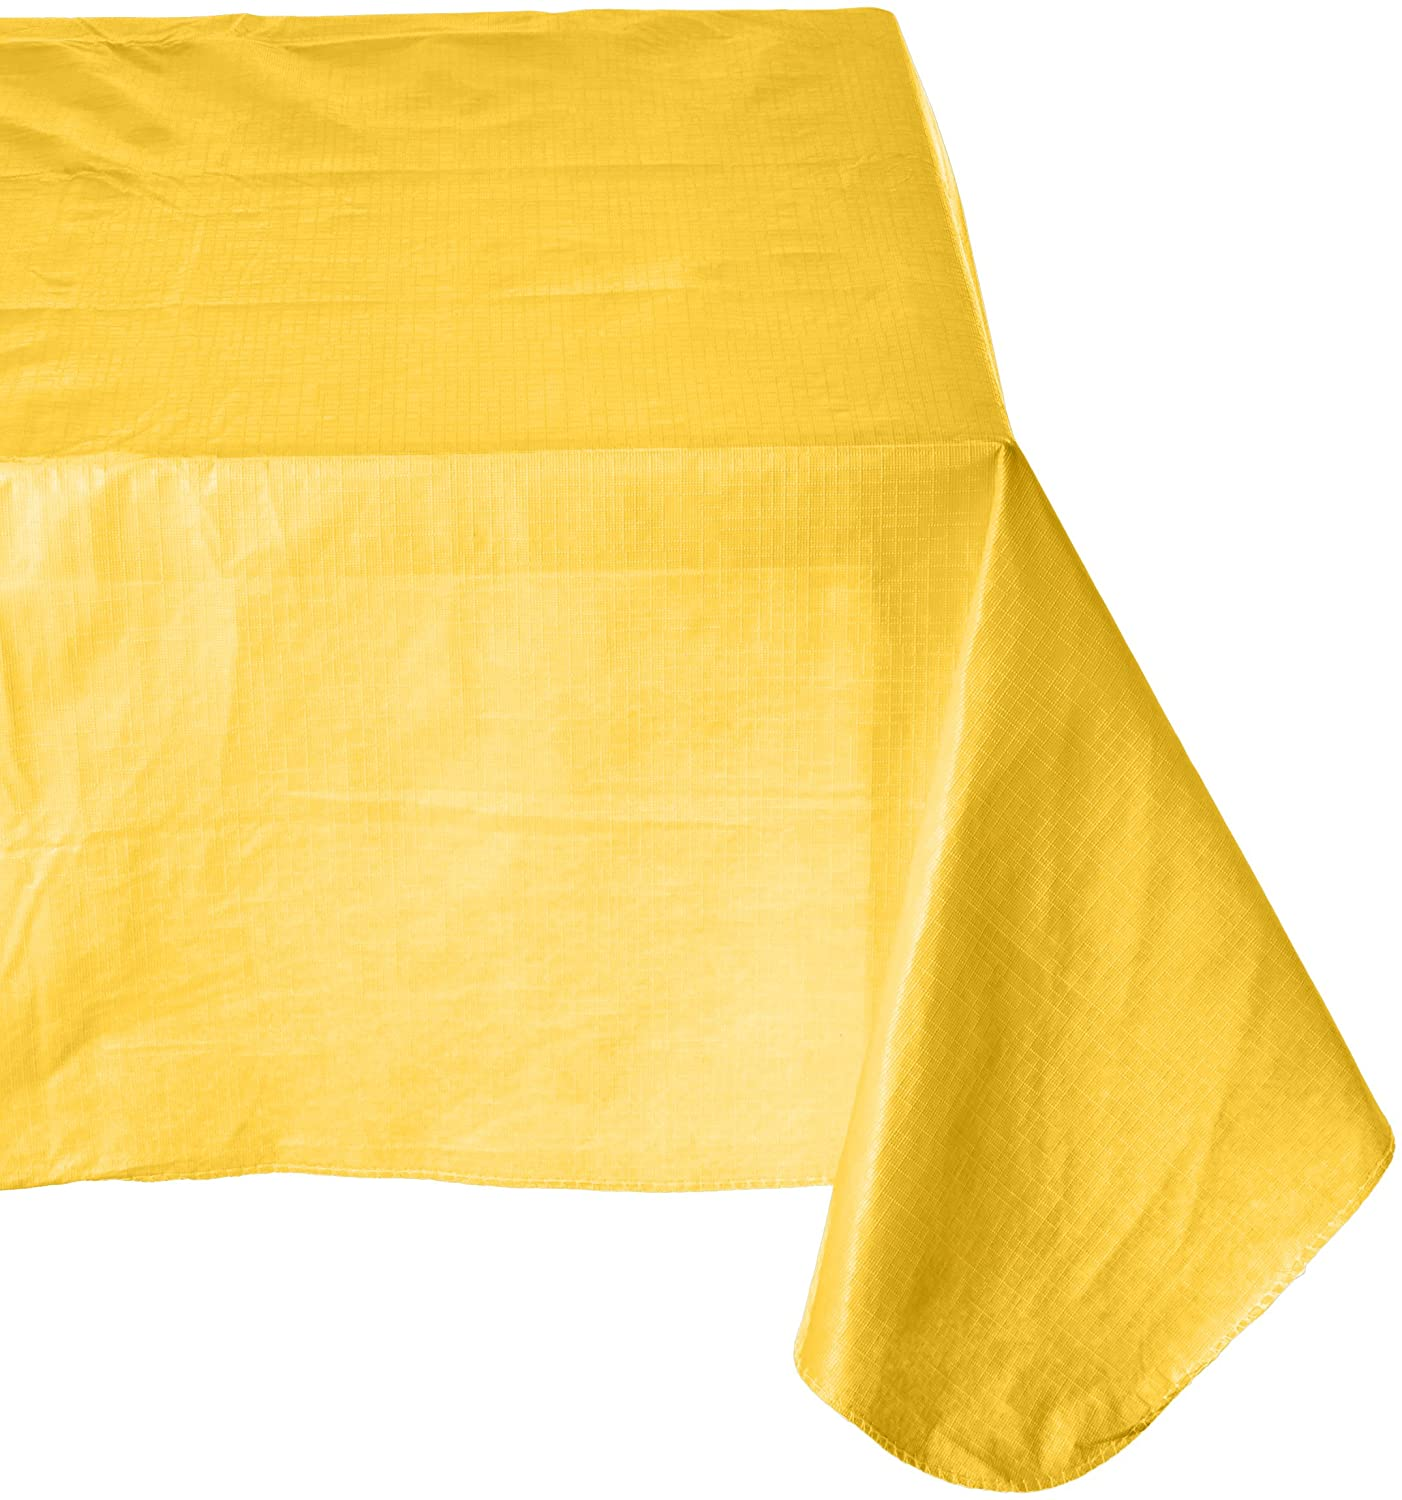 Amscan Durable Indoor Outdoor Flannel Backed in Solid Color Yellow Vinyl 52 x 90 Others Party Supplies